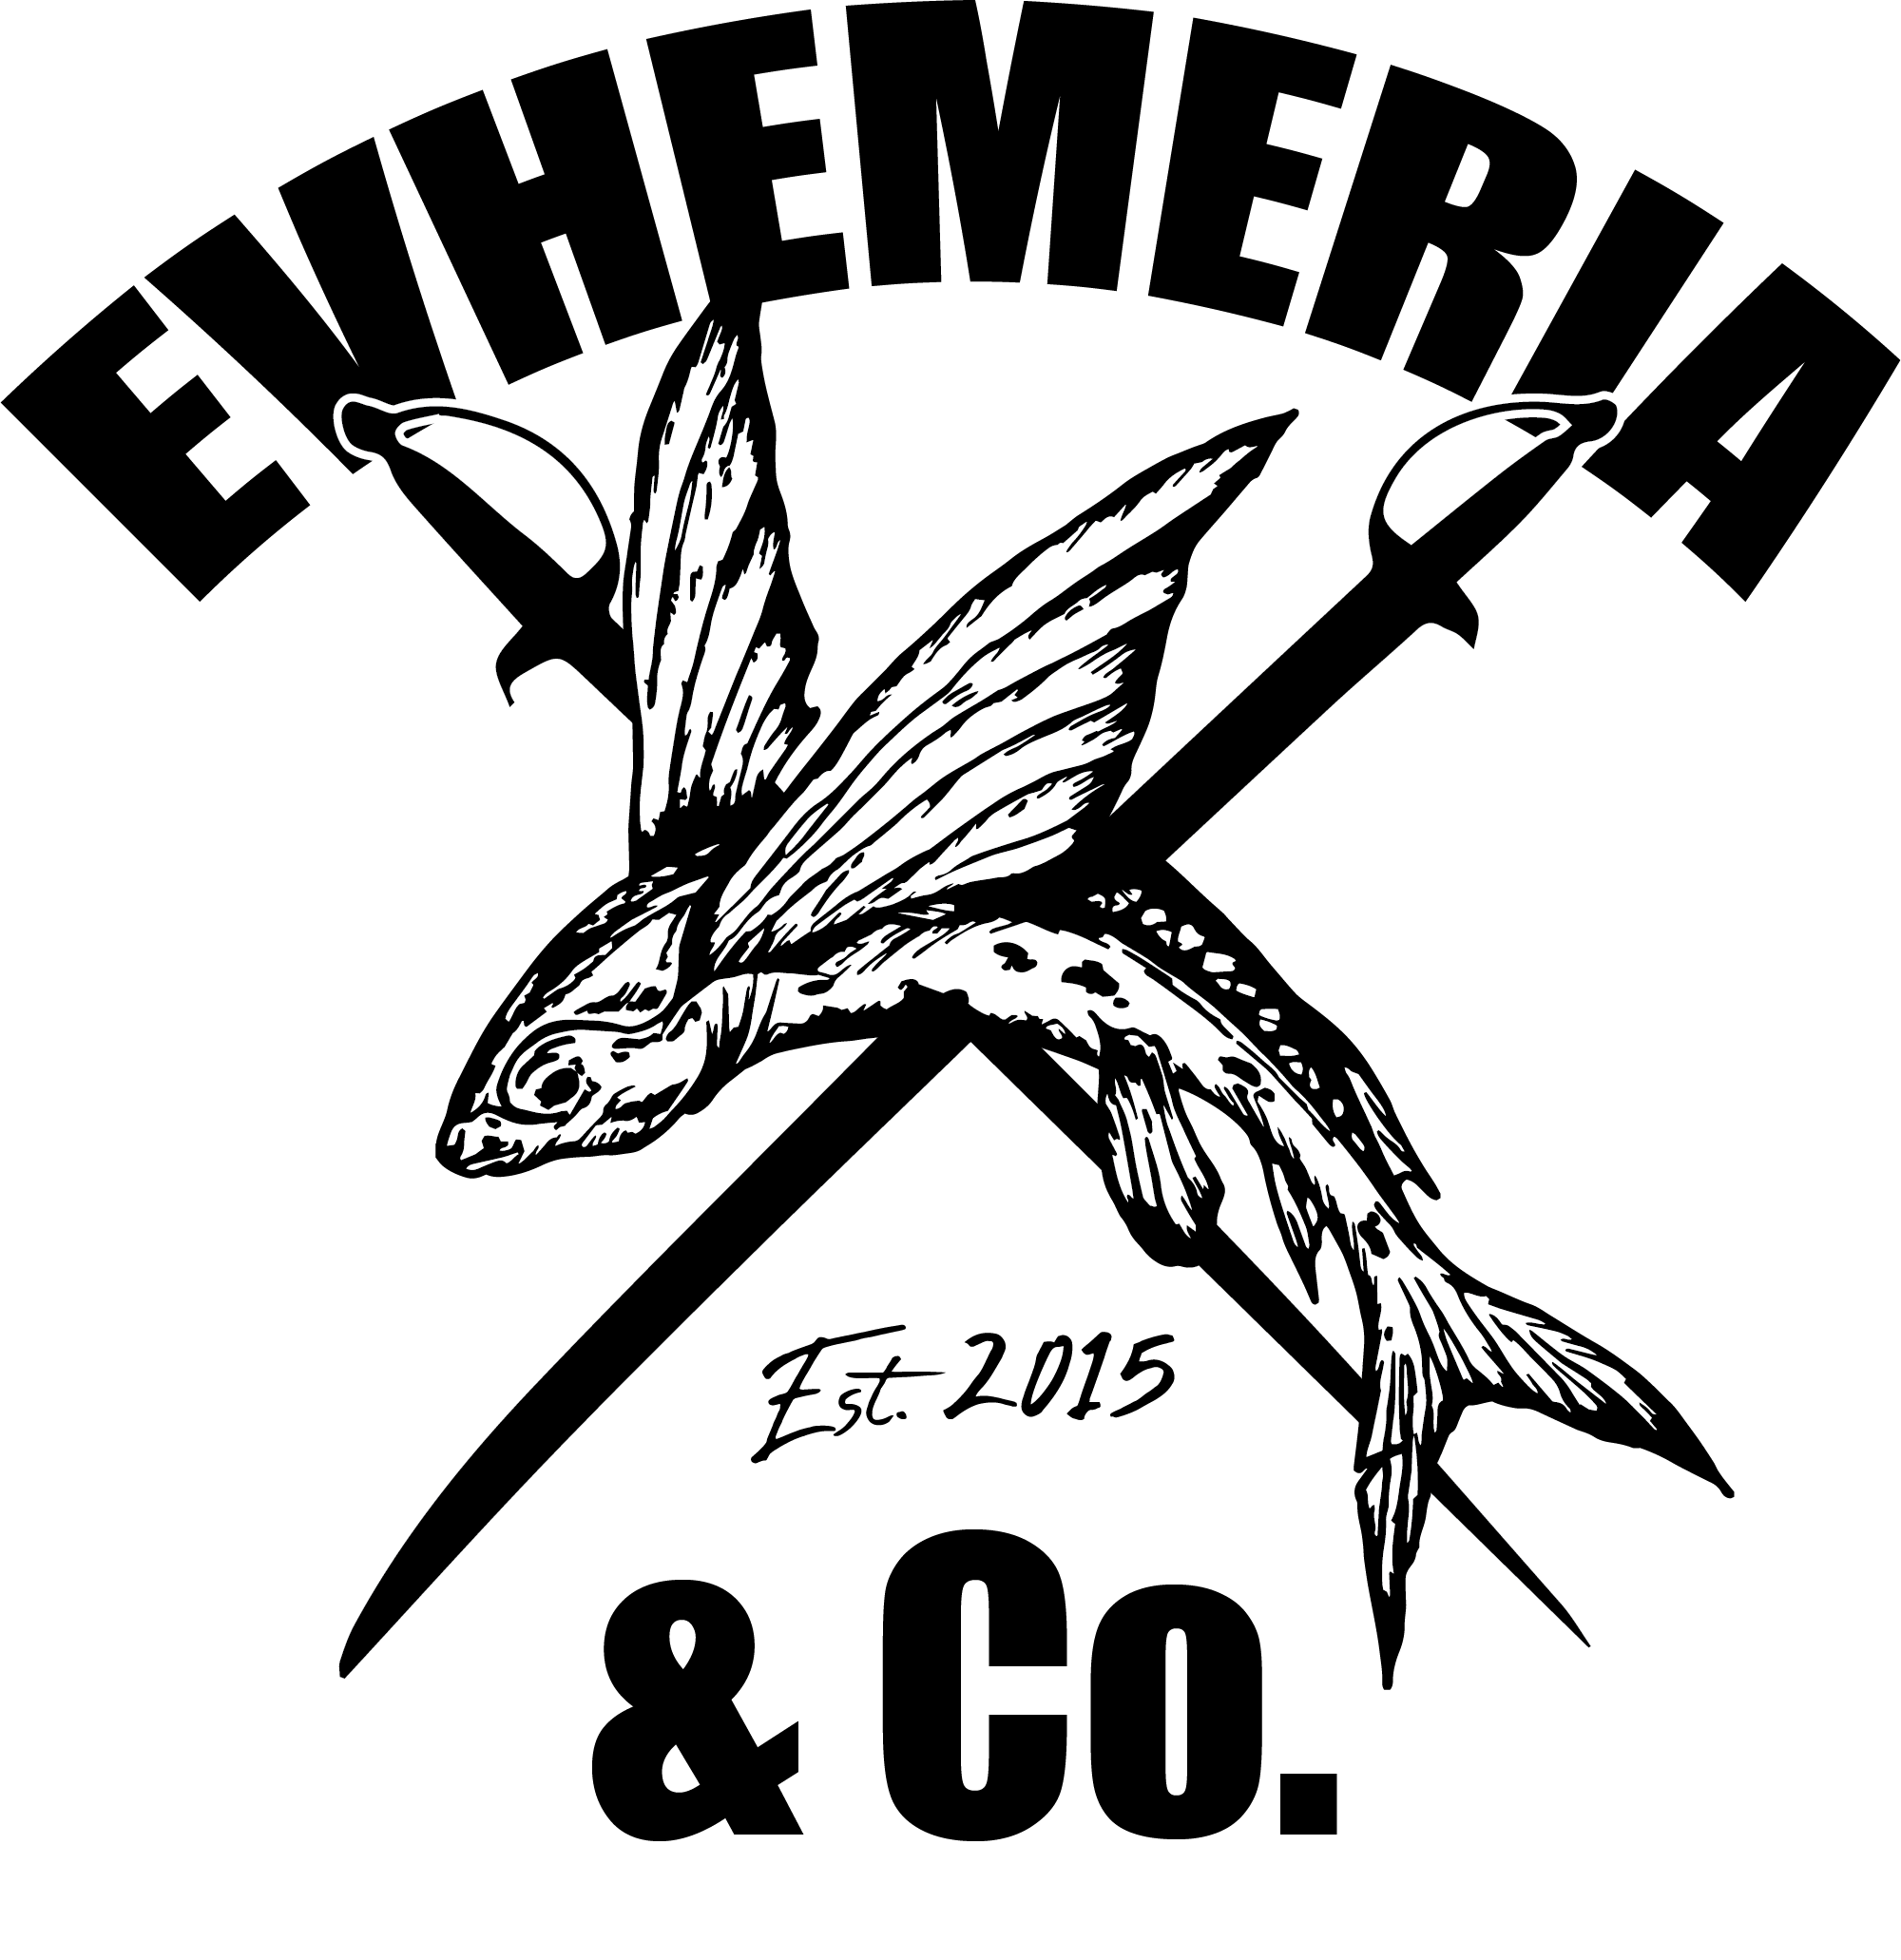 Evhemeria & Co